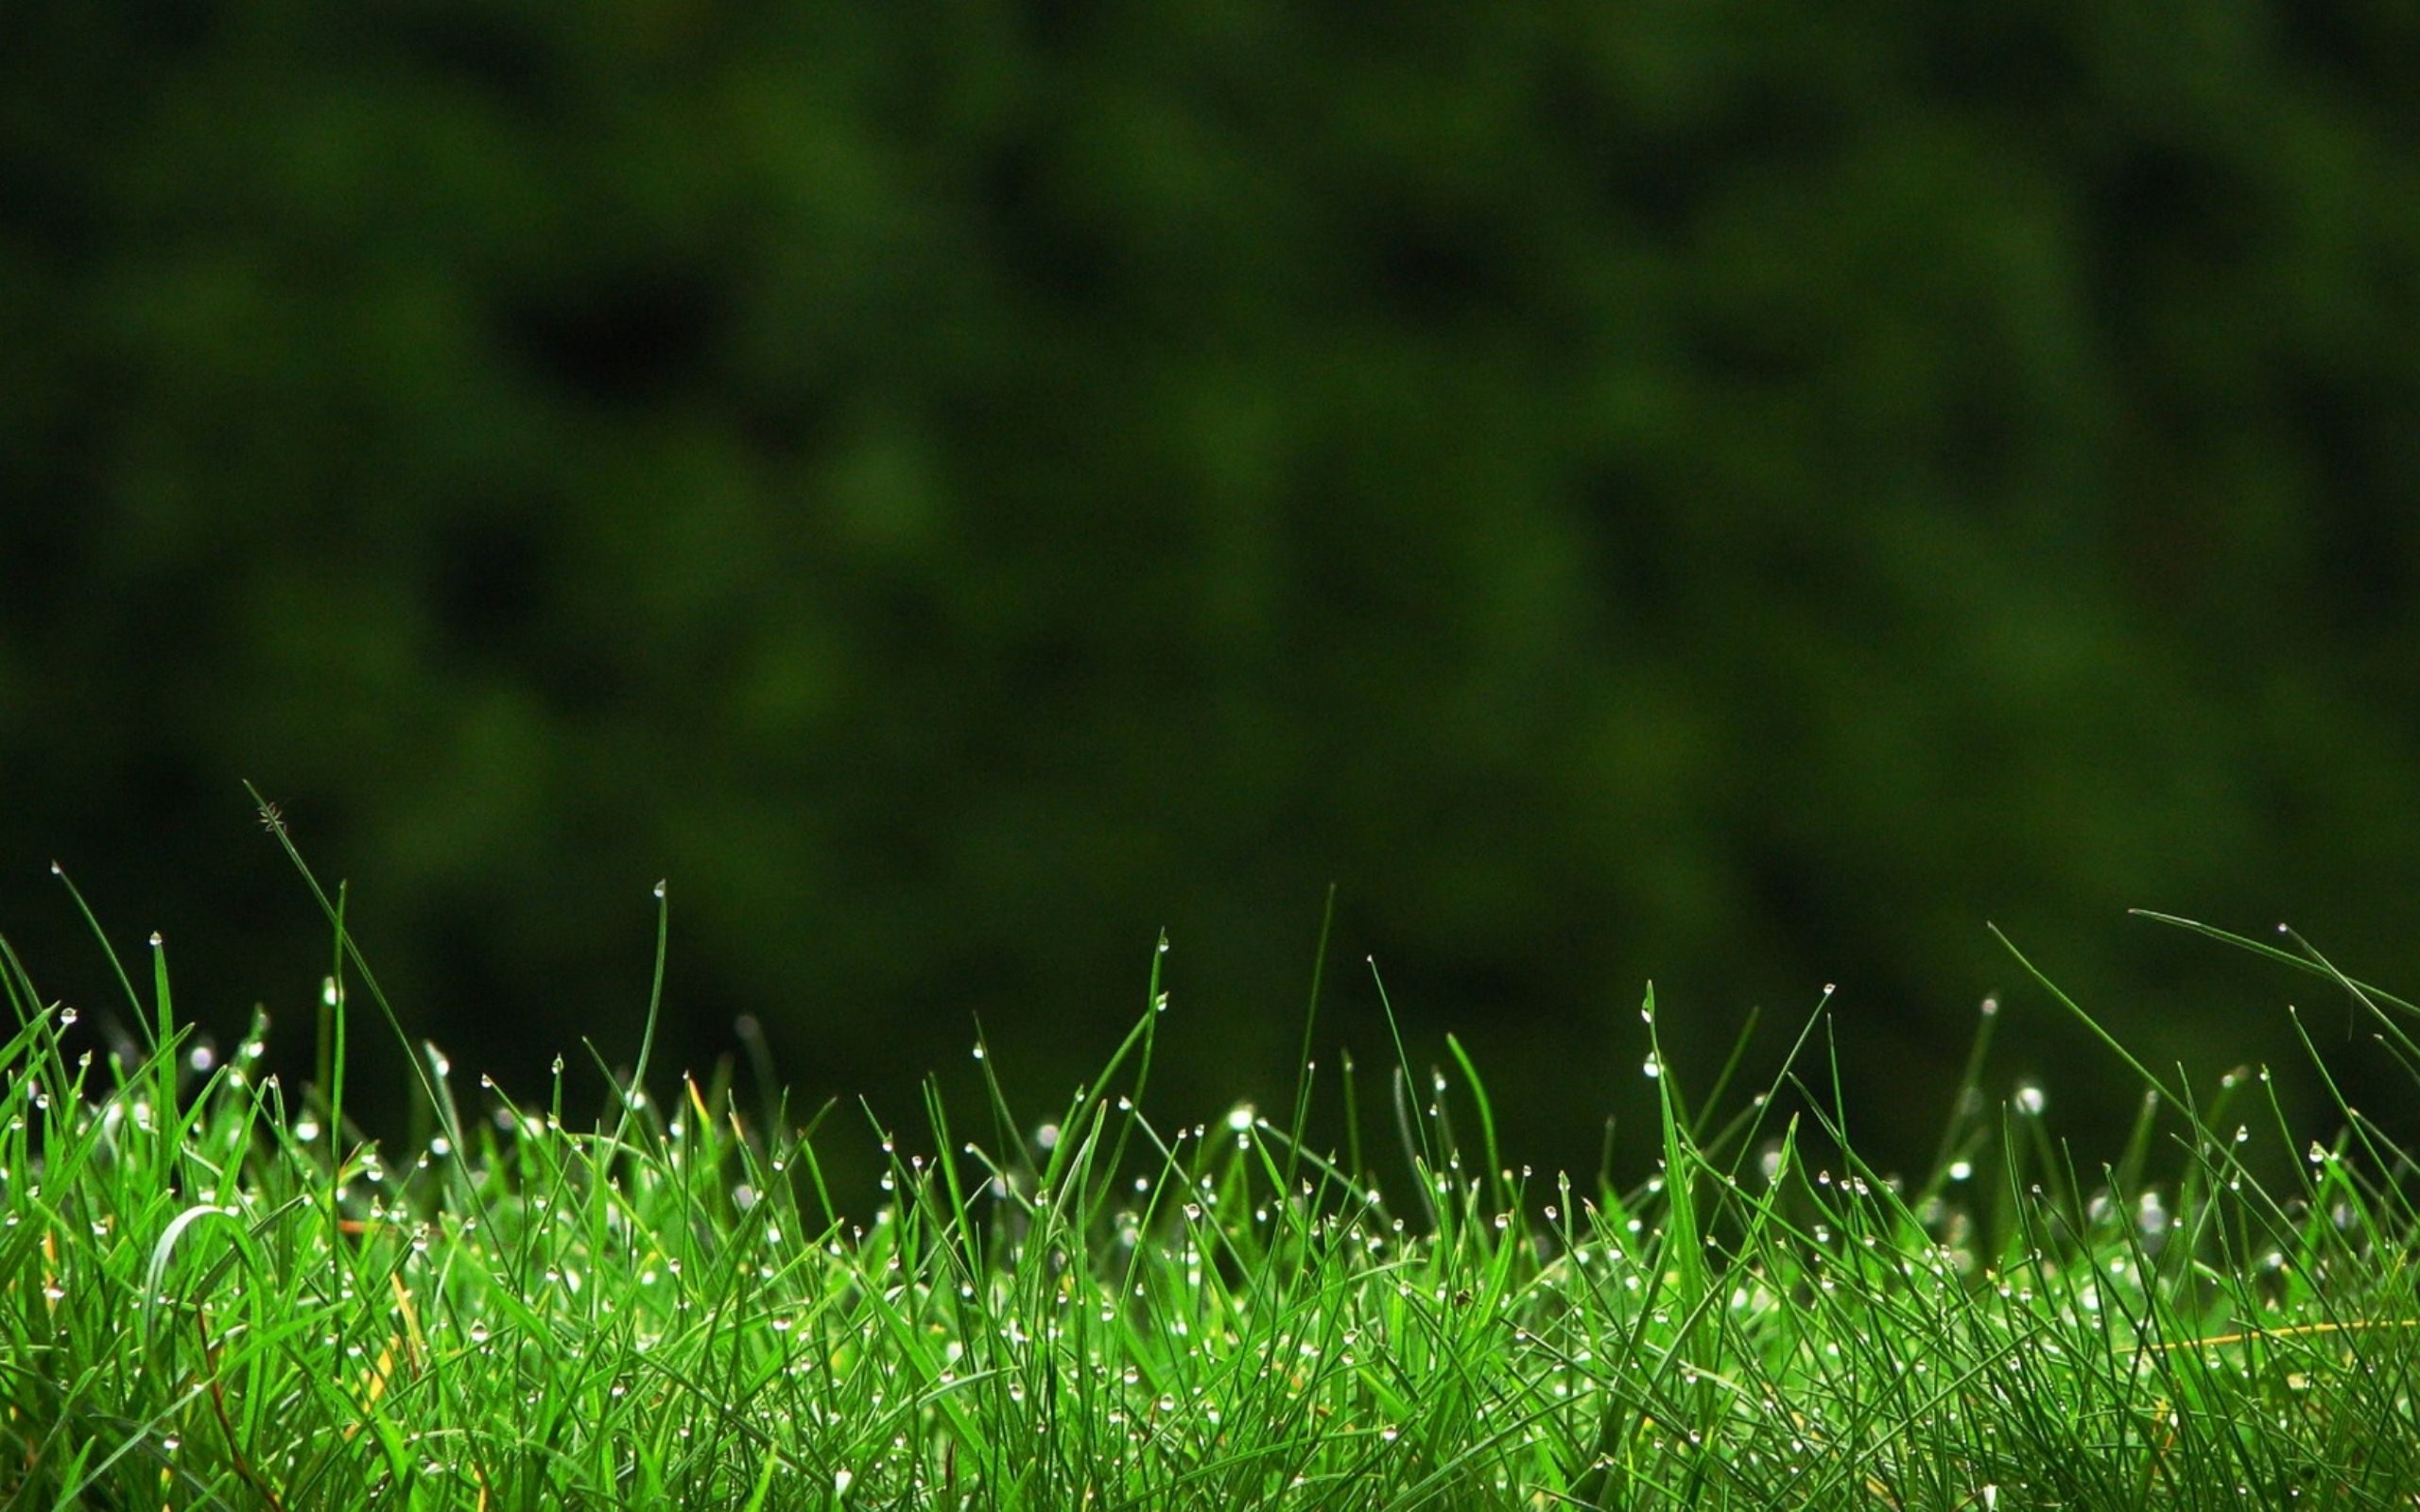 Green Grass Wallpaper Hd Download Grass Wallpaper Field Wallpaper Nature Wallpaper